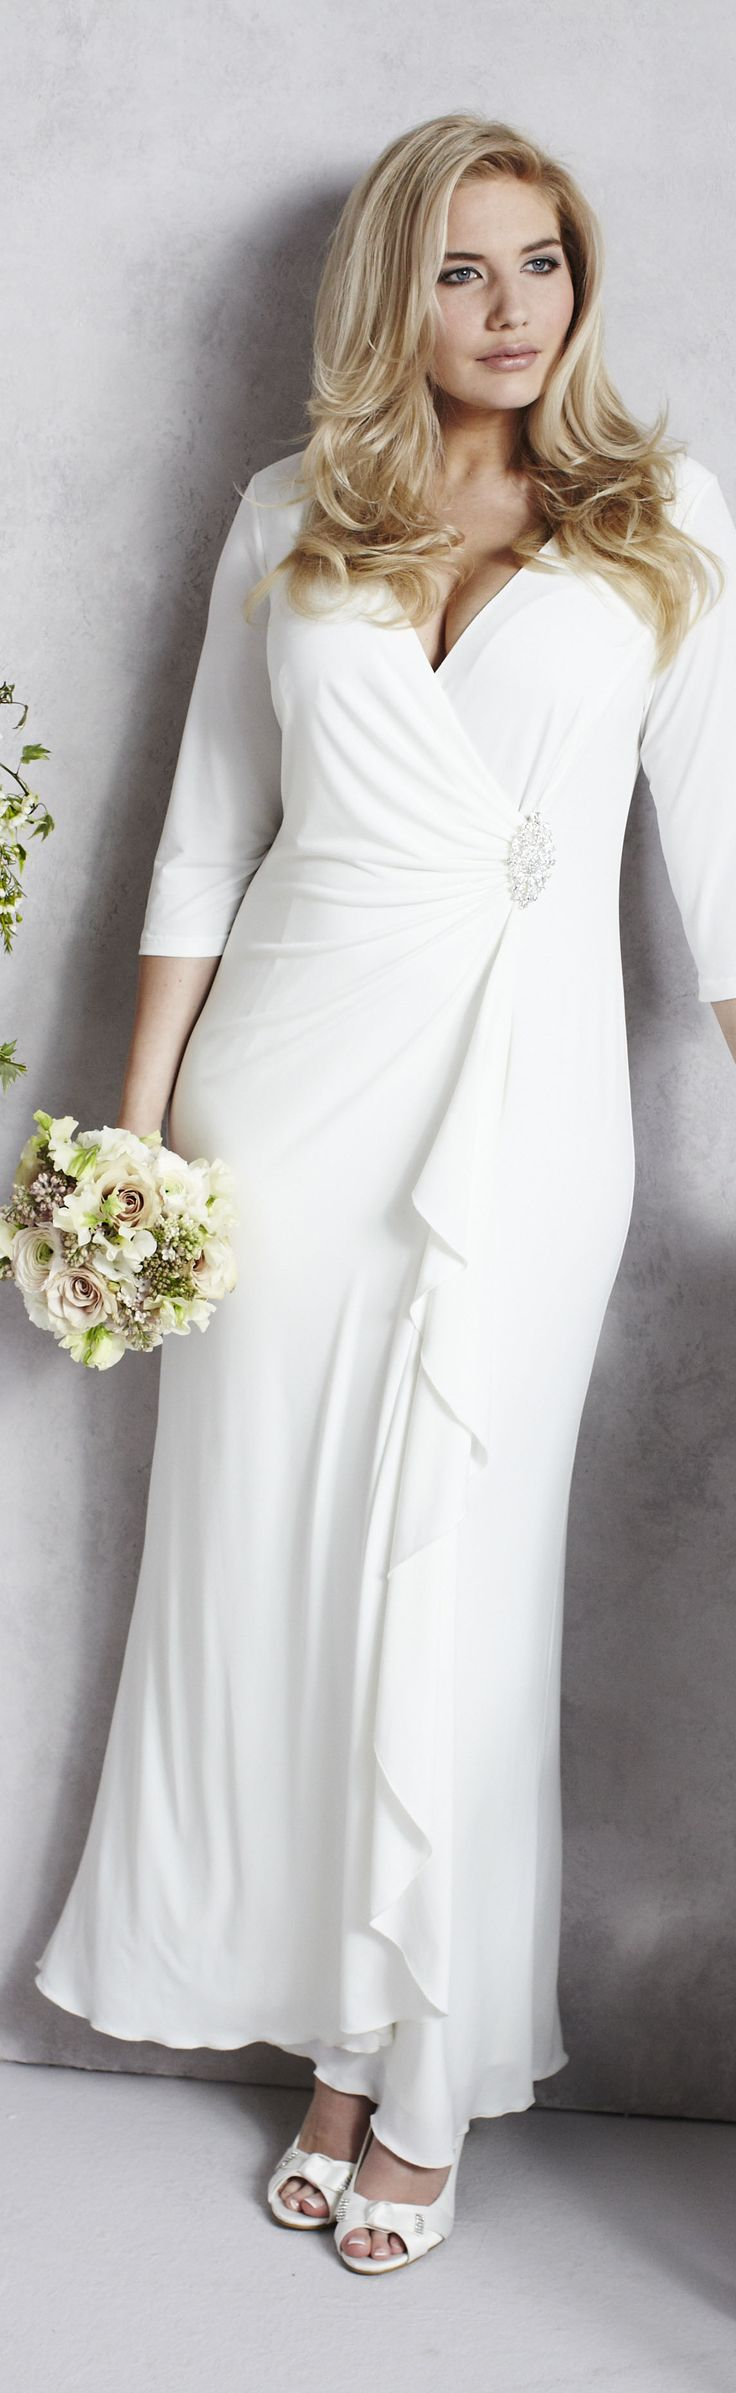 Wedding Dresses For The Mature Bride : Weddings weddingdresses dresses second http